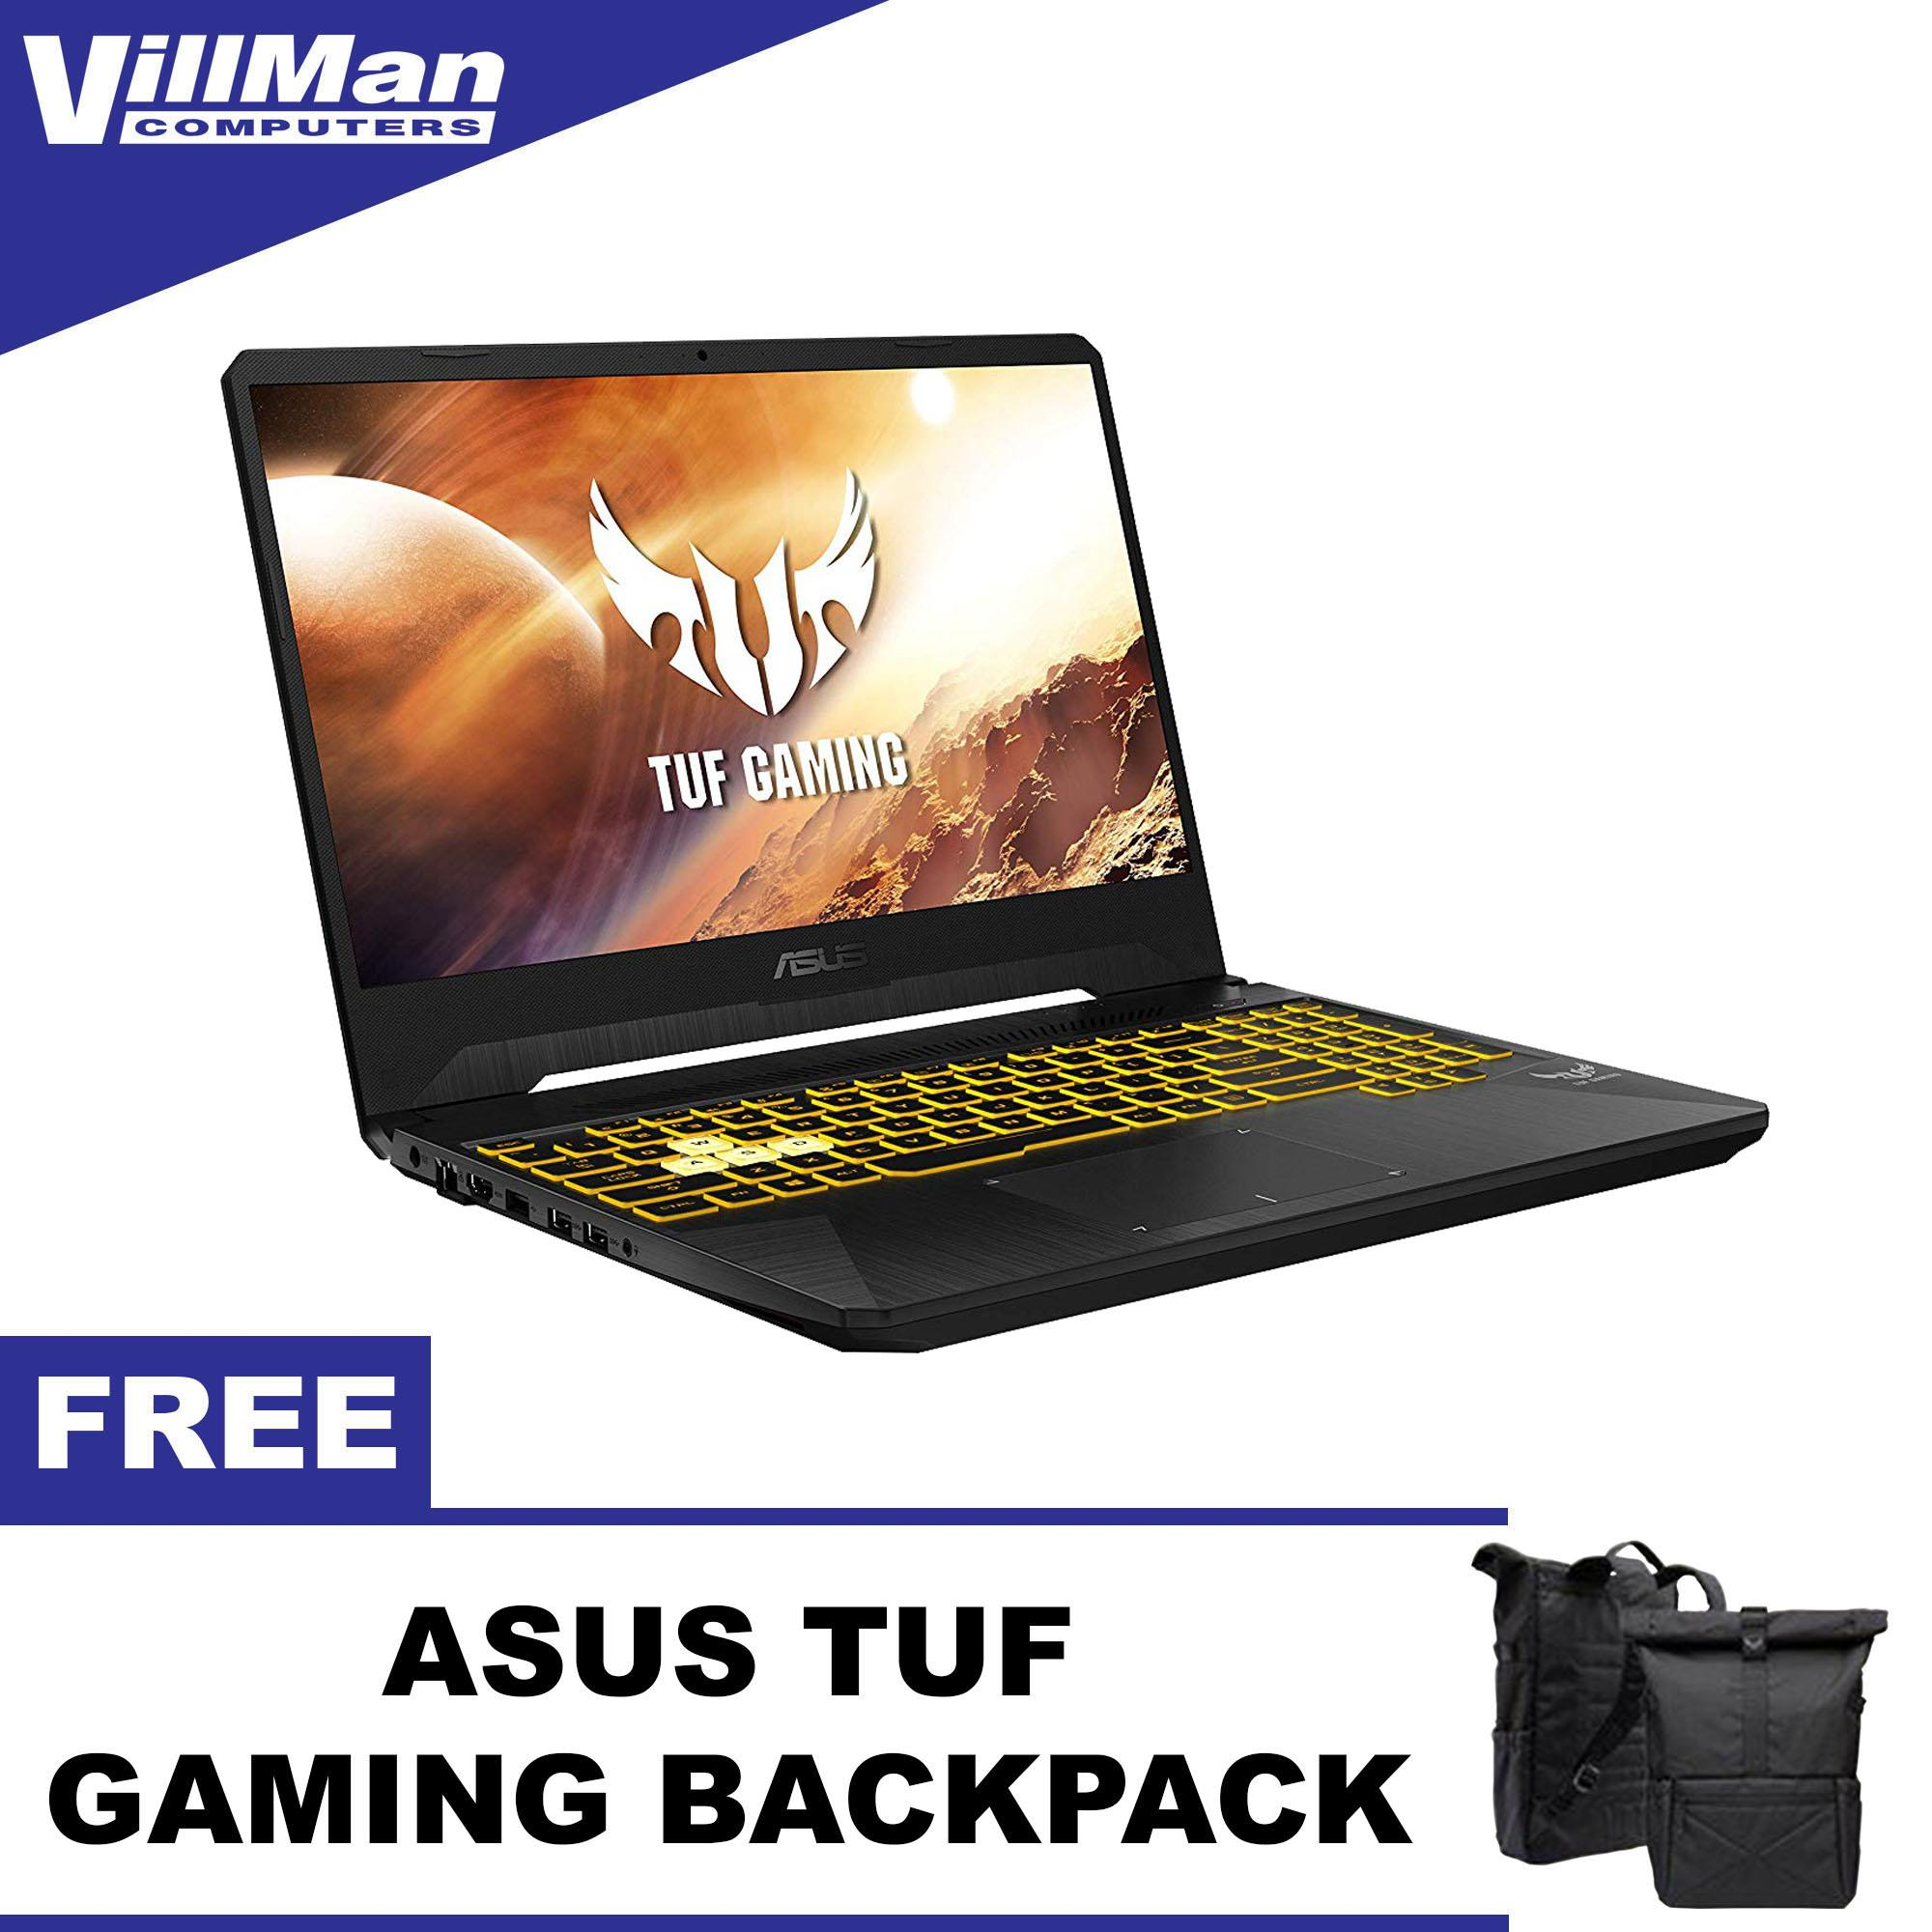 Asus TUF FX505DD-AL233T, 15 6In FHD 120Hz, AMD R5 3550 CPU, 8GB RAM, 1TB  HDD, GTX1050 3GB, Windows 10 Gaming Laptop with Free TUF Gaming Backpack